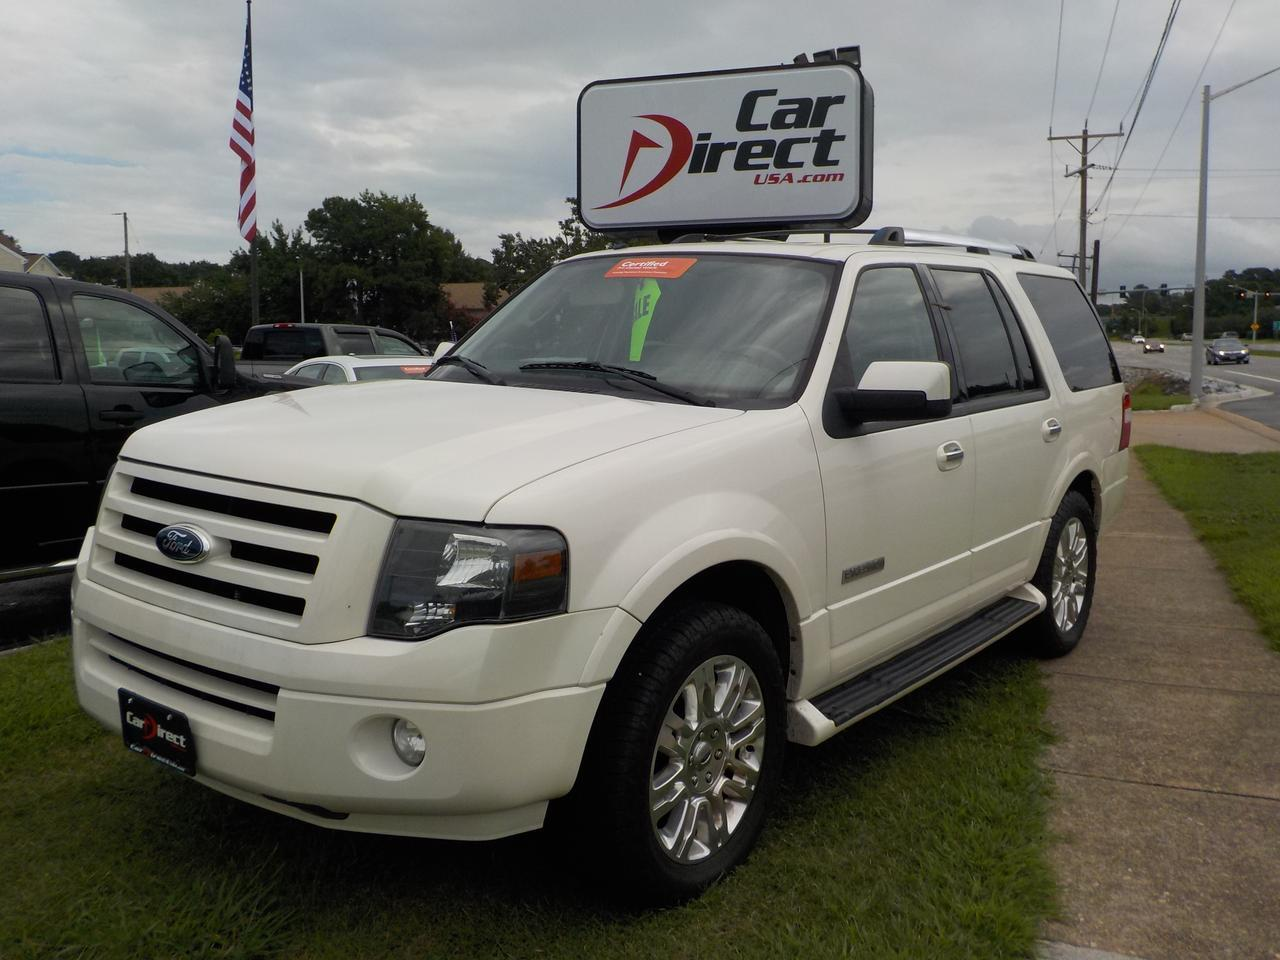 Ford Expedition Limited Certified Pre Owned Navigation Leather Rd Row Power Seat Tow Package Virginia Beach Va